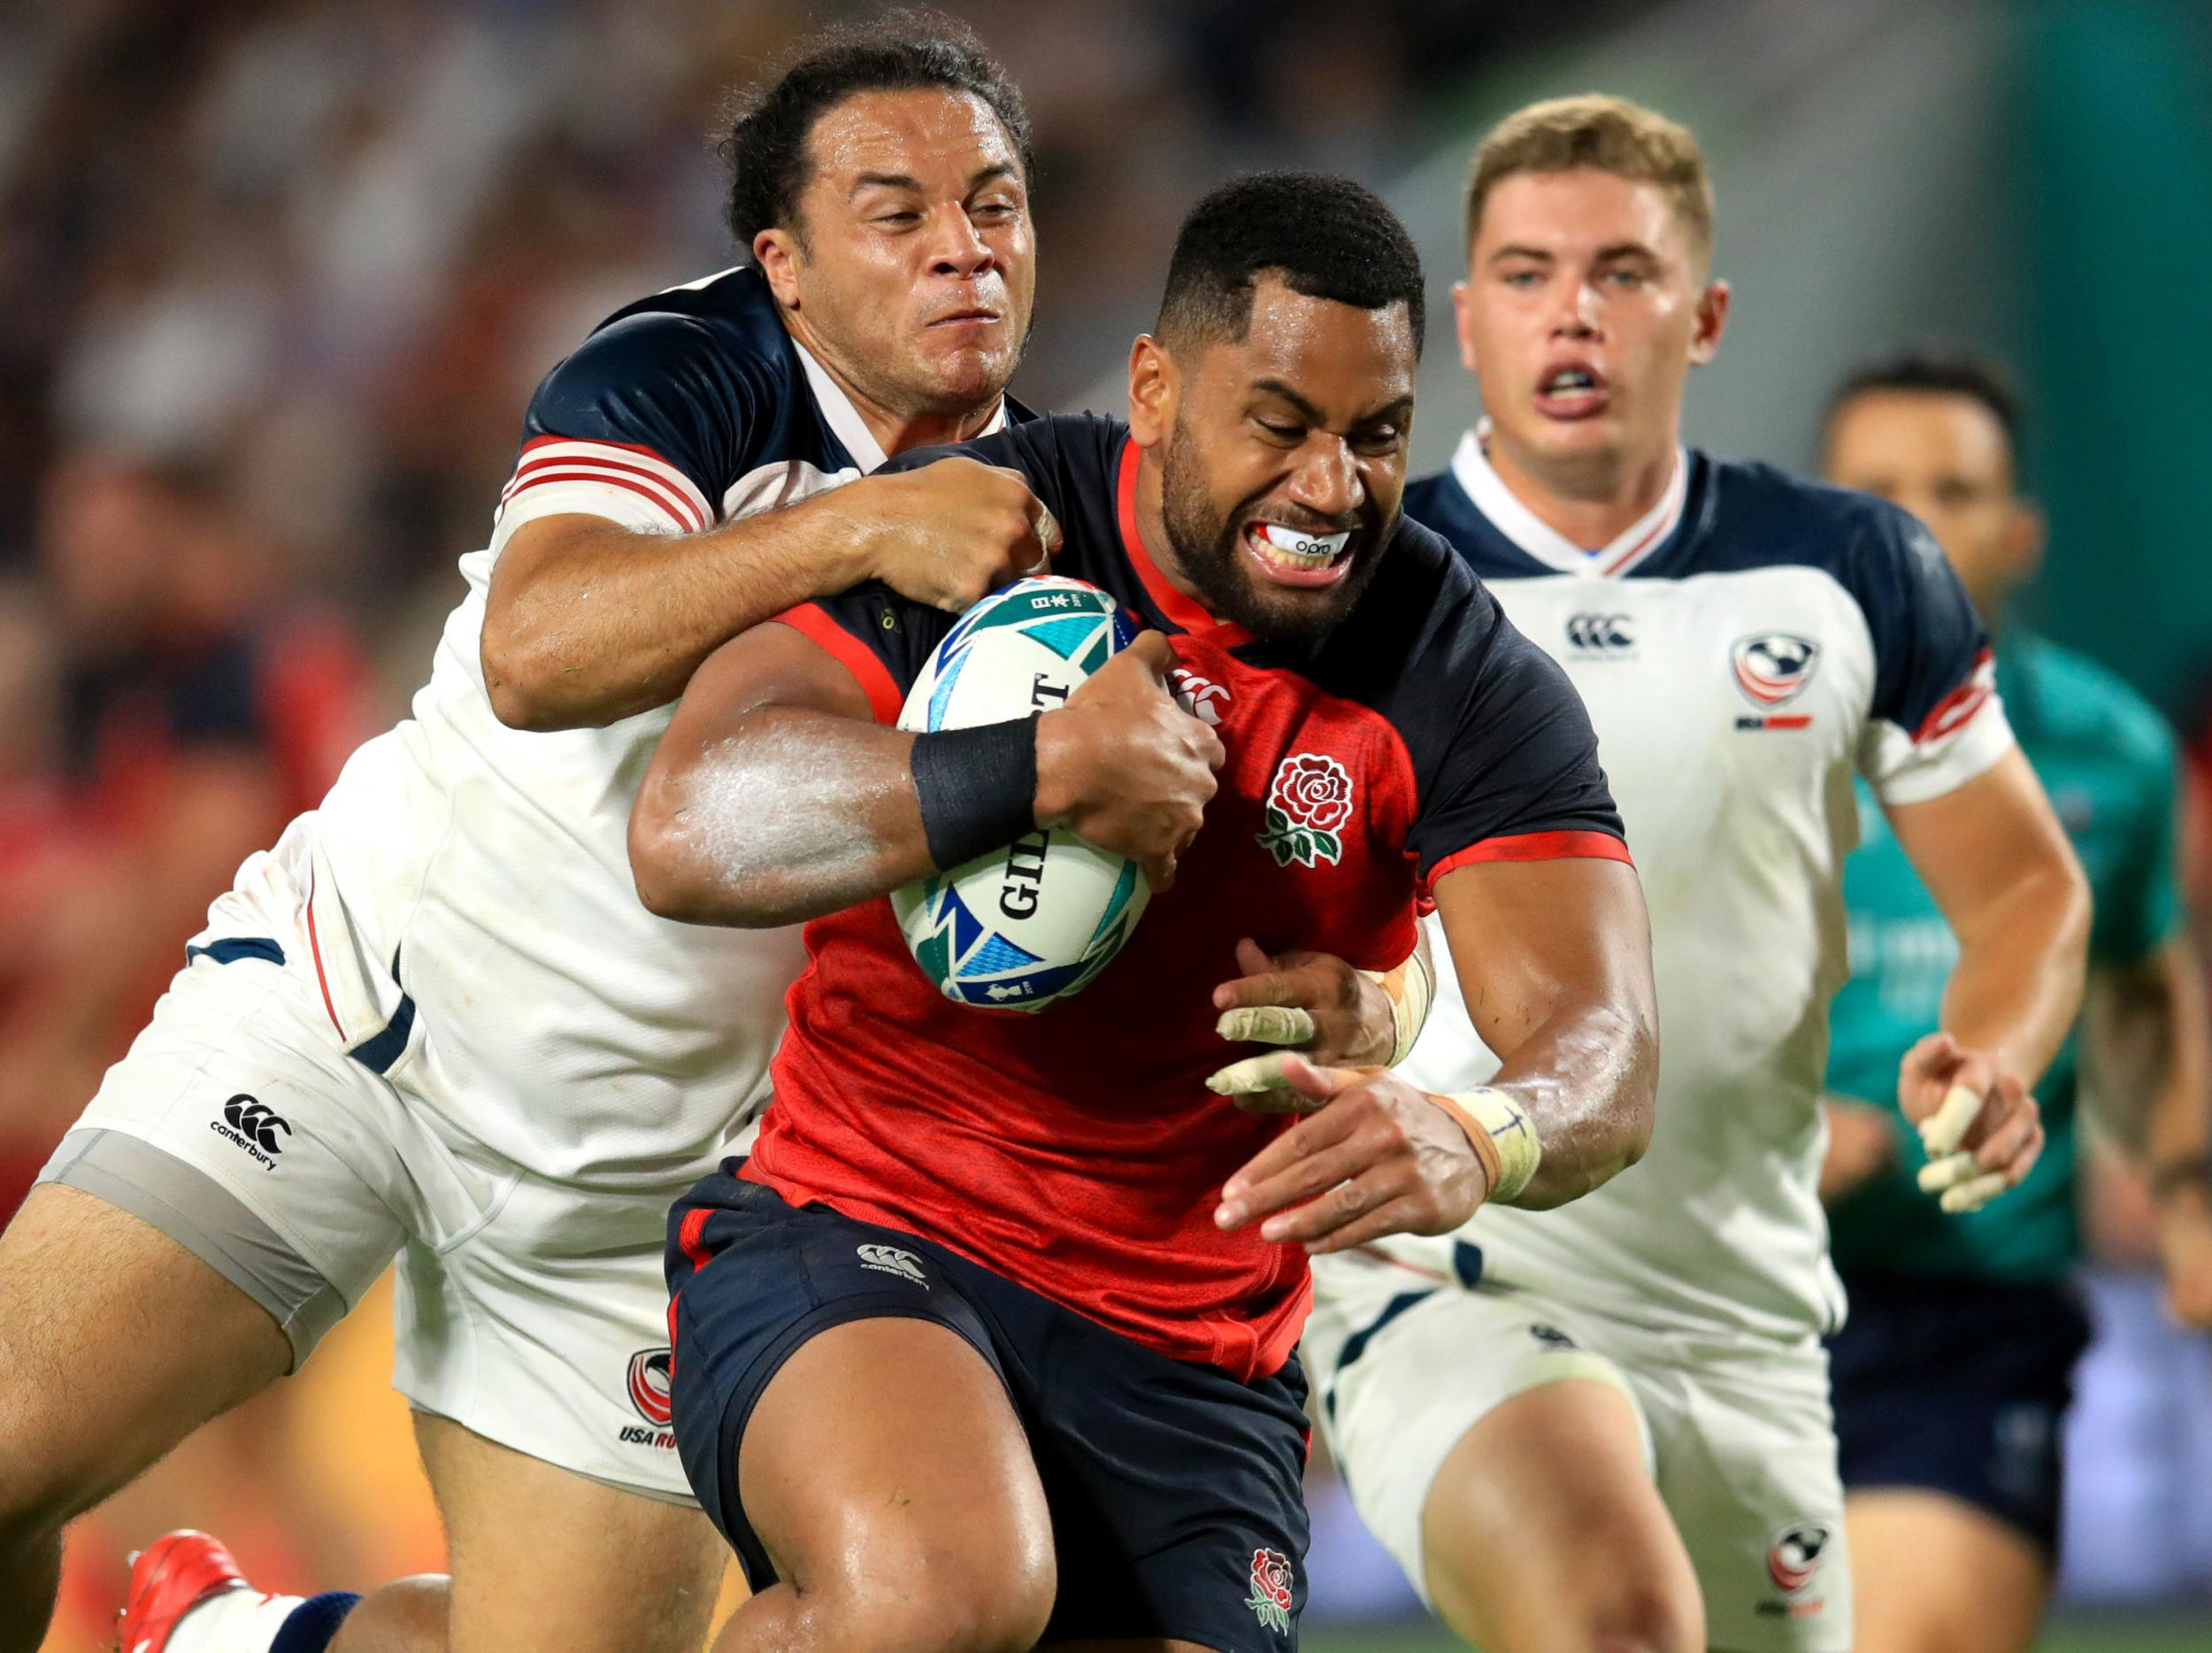 Rugby World Cup 2019: Joe Cokanasiga the star attraction as England rout the USA